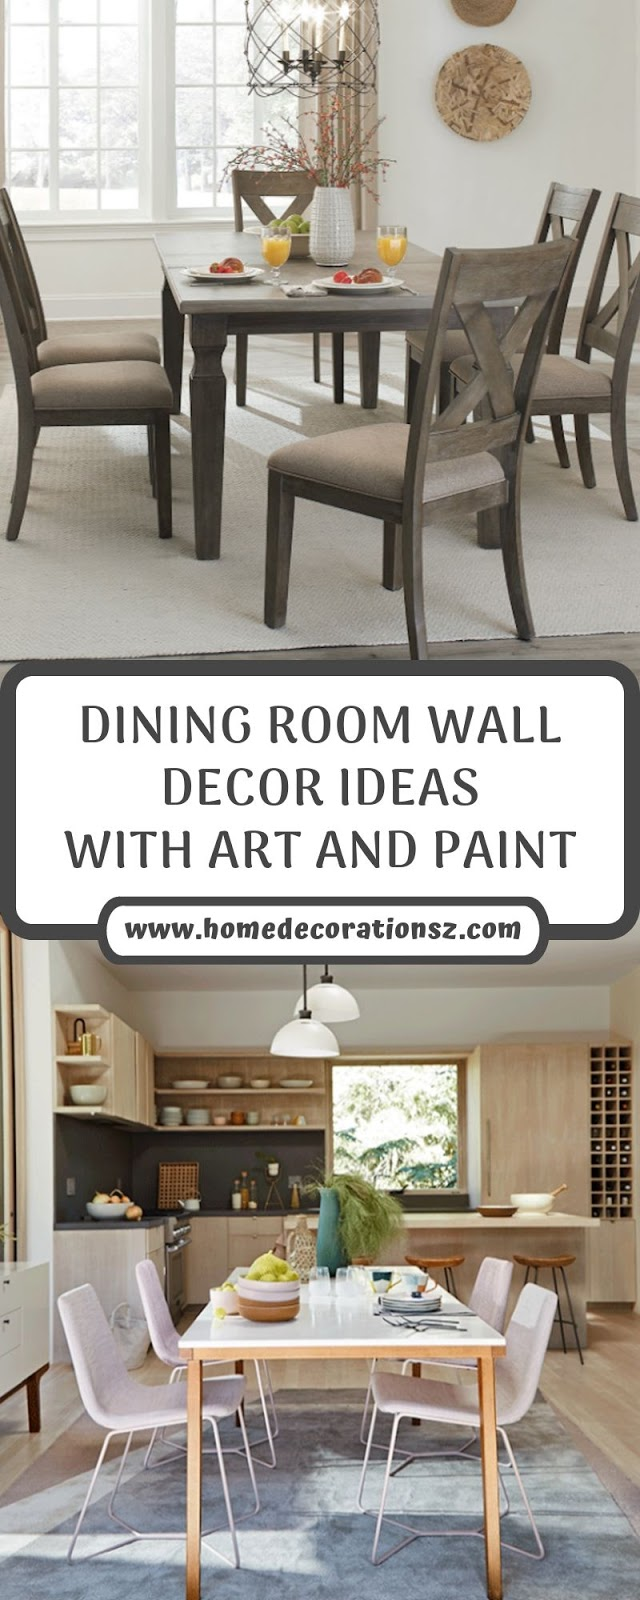 DINING ROOM WALL DECOR IDEAS WITH ART AND PAINT